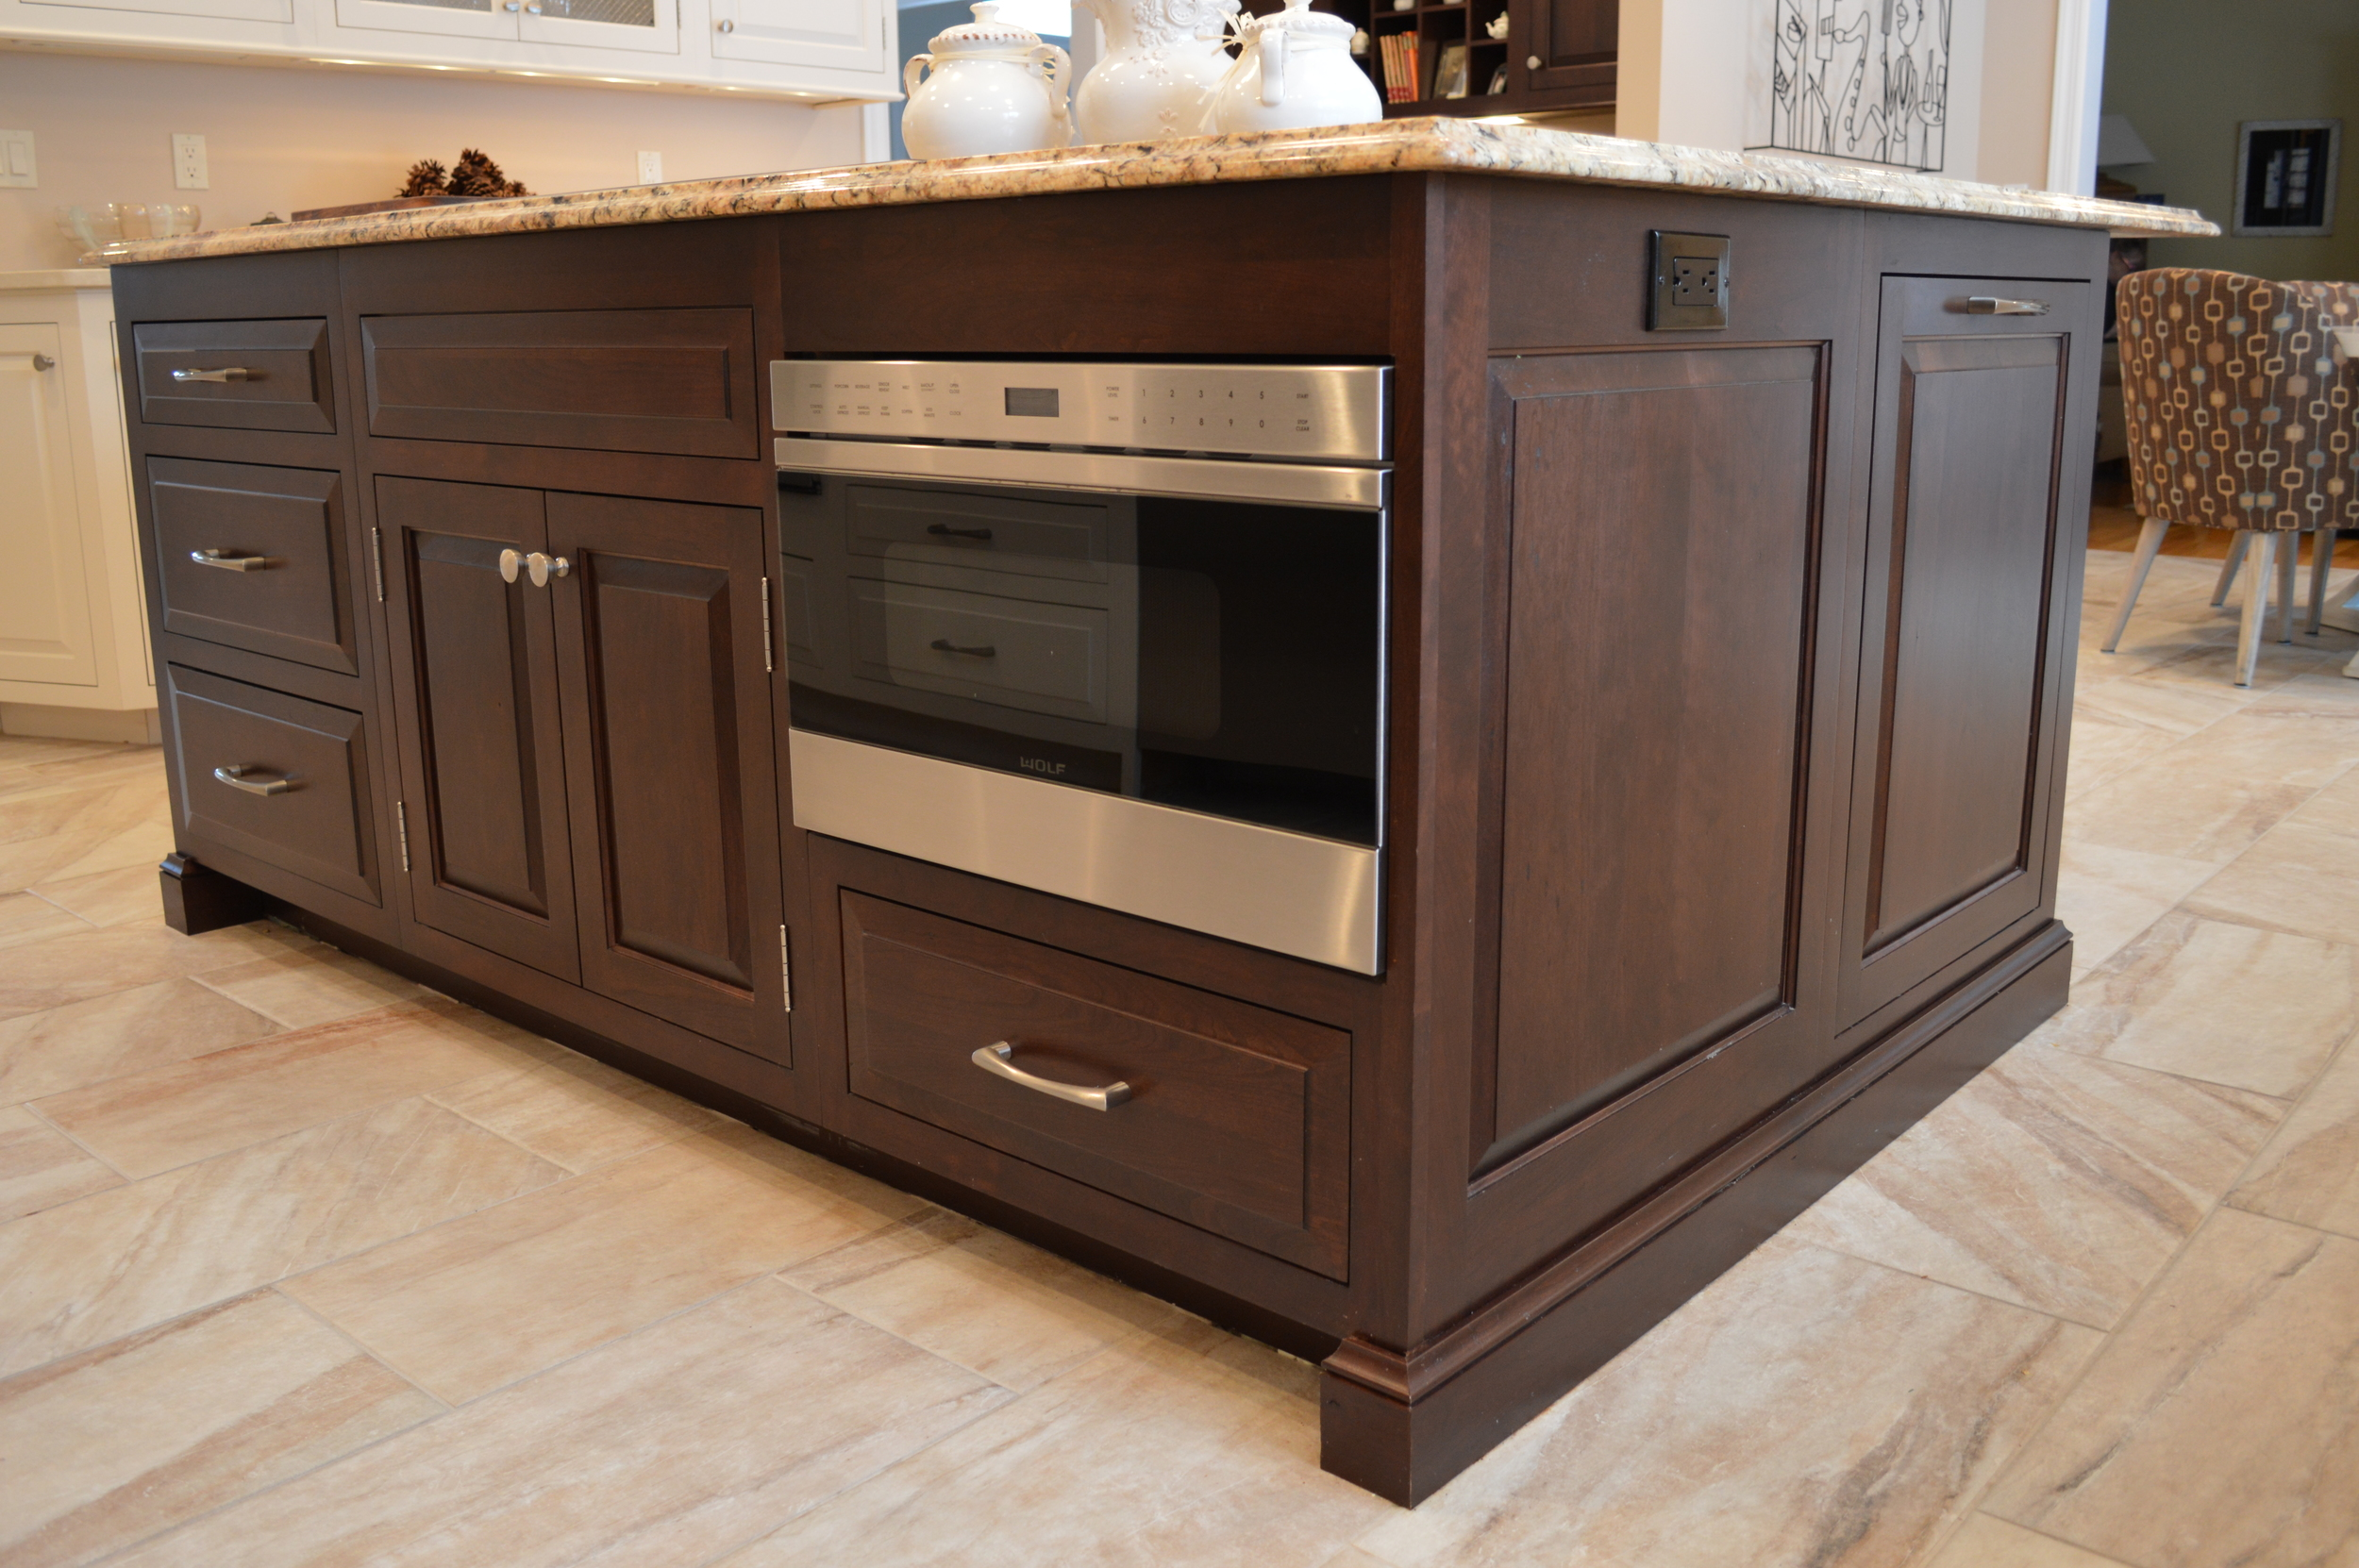 Espresso Cherry Island - Raised End Panels & Stainless Steel Drawer Microwave